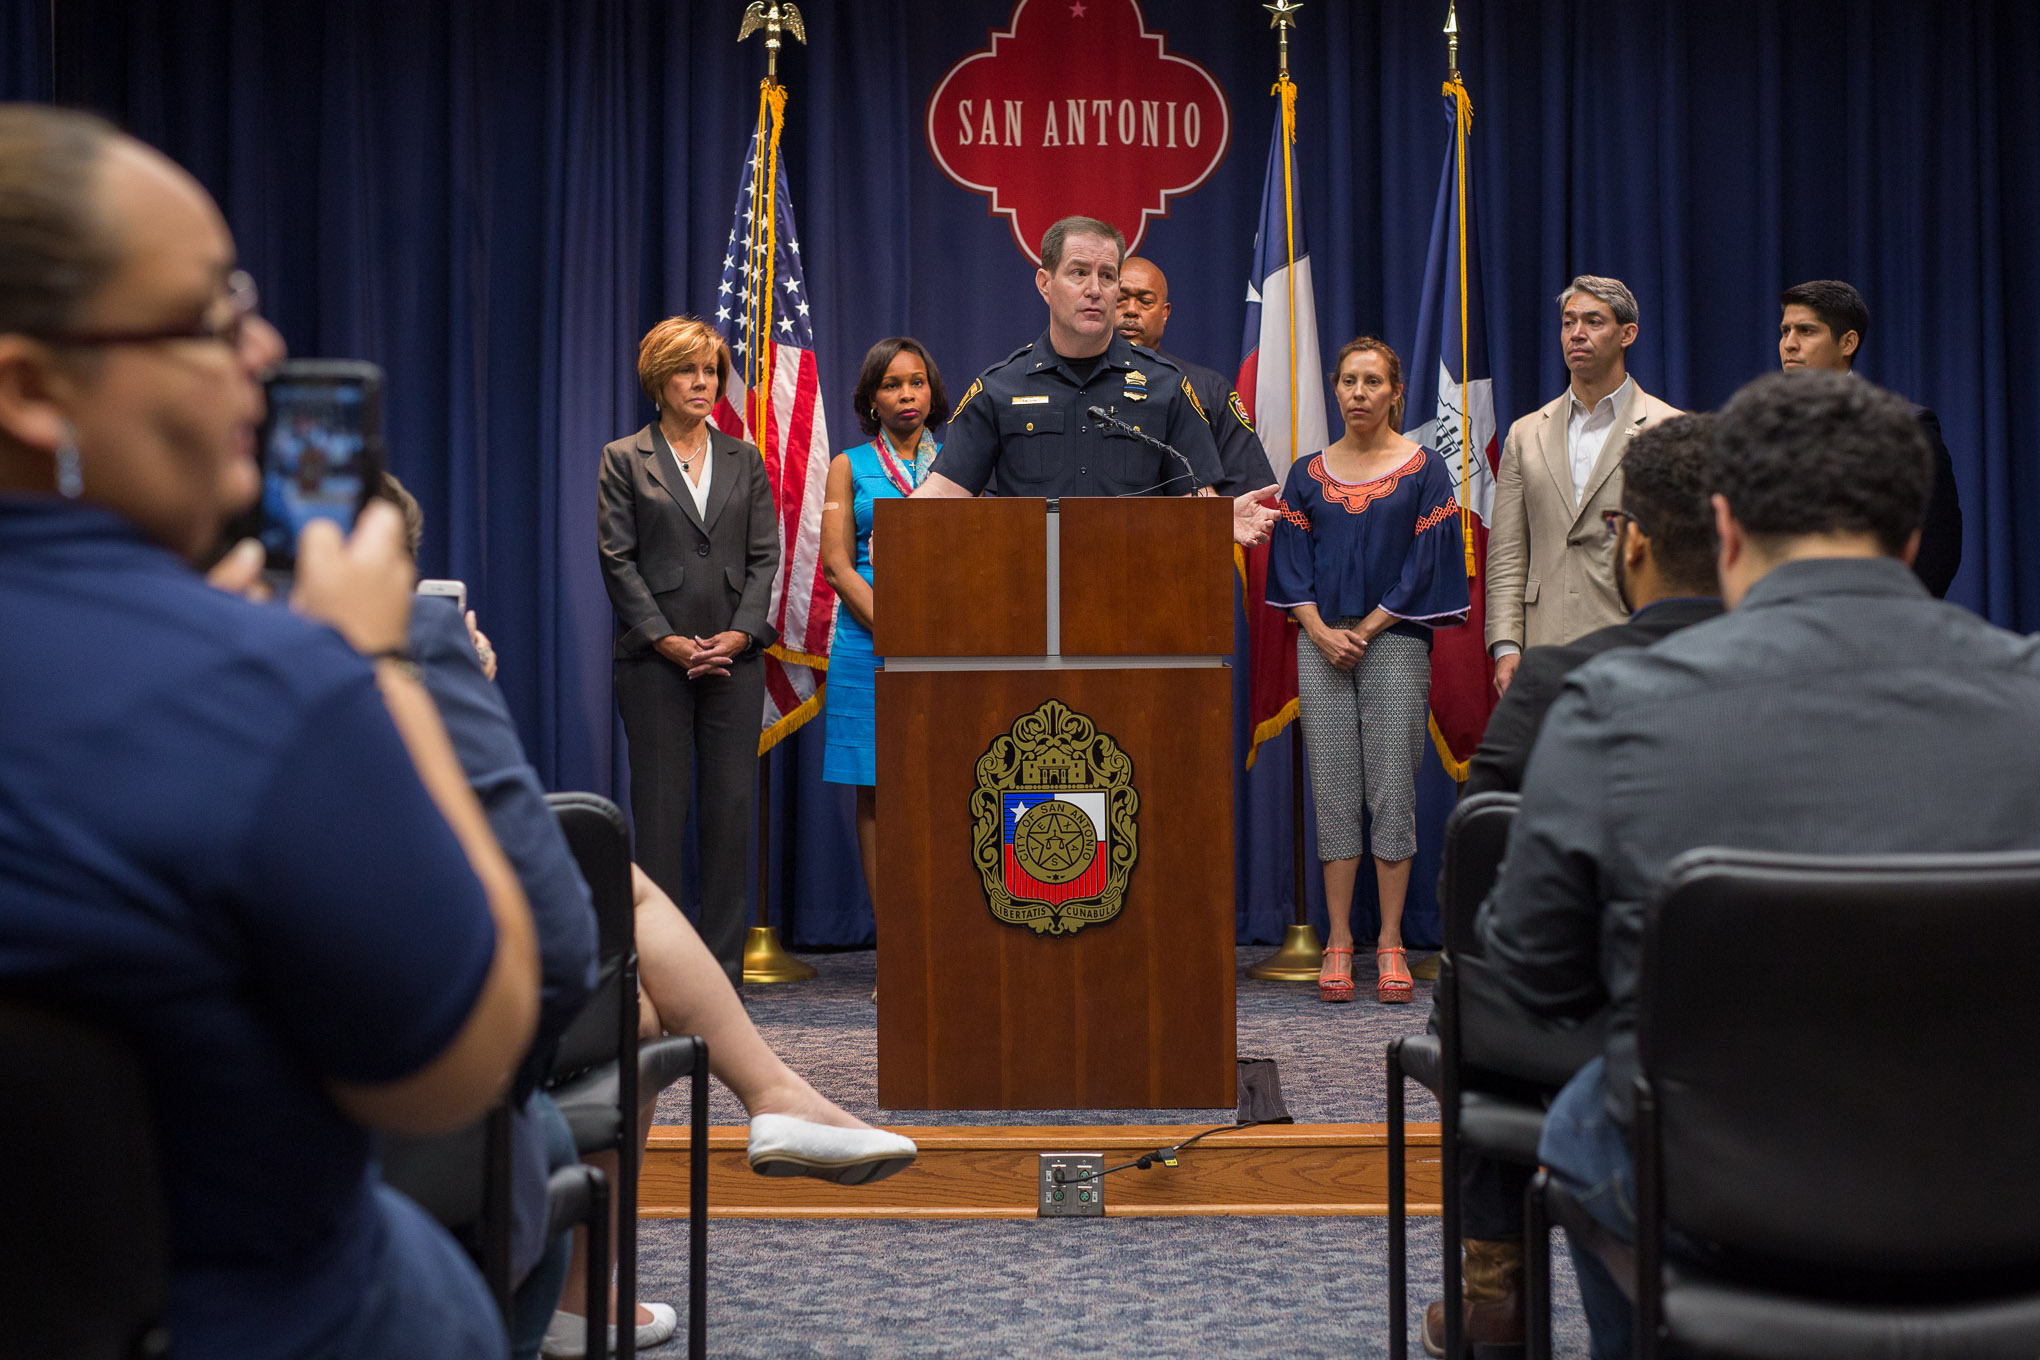 San Antonio Police Department Deputy Chief Anthony Treviño provides a statement following the violence that has occurred across the country this week. Photo by Scott Ball.